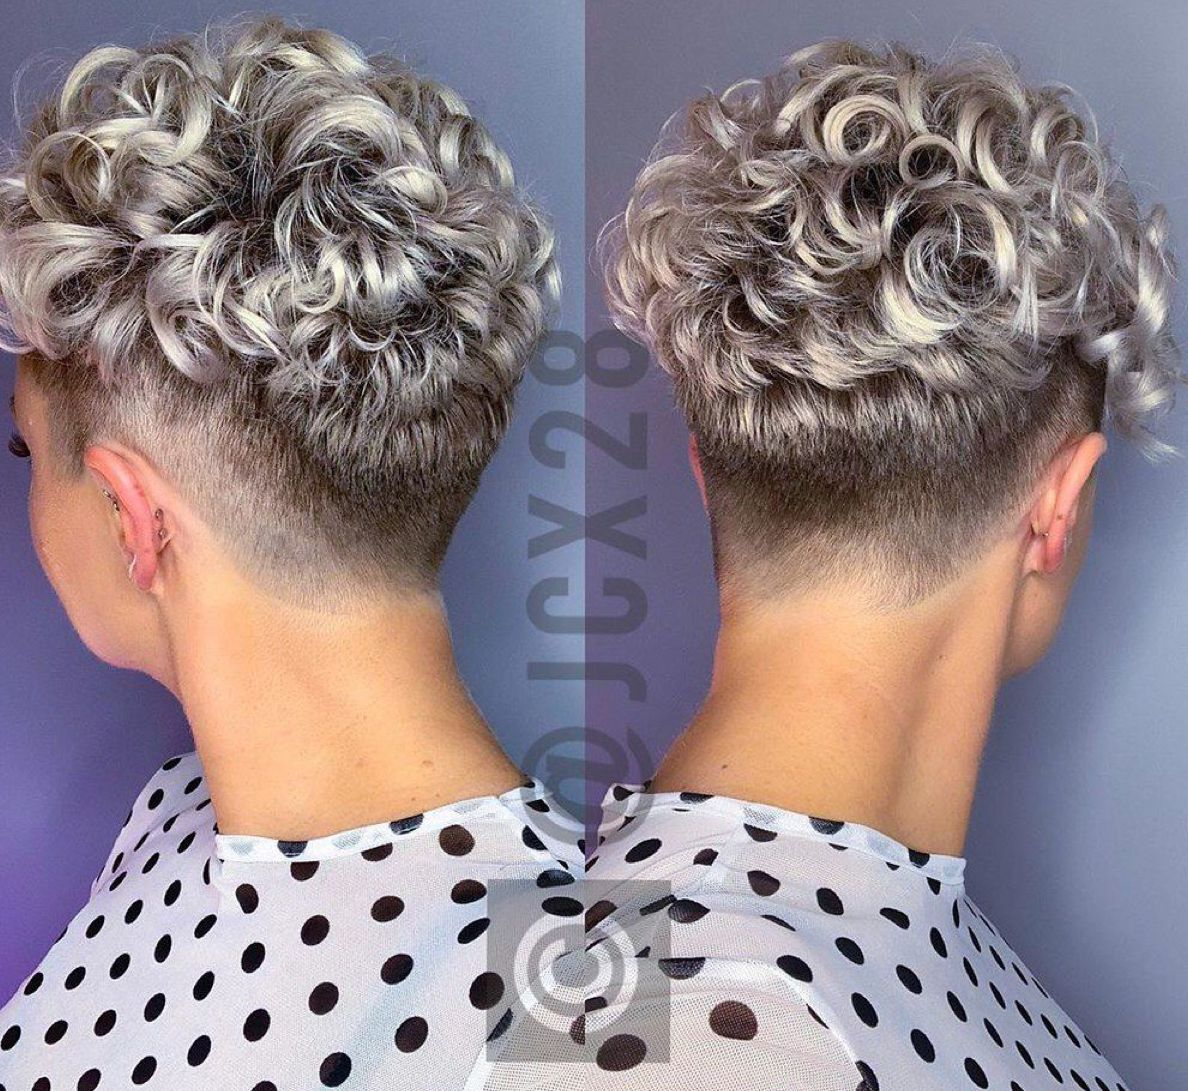 Pin By Layanne A Ribeiro On Krullen Kapsels 01 Curly Pixie Haircuts Curly Pixie Hairstyles Short Permed Hair